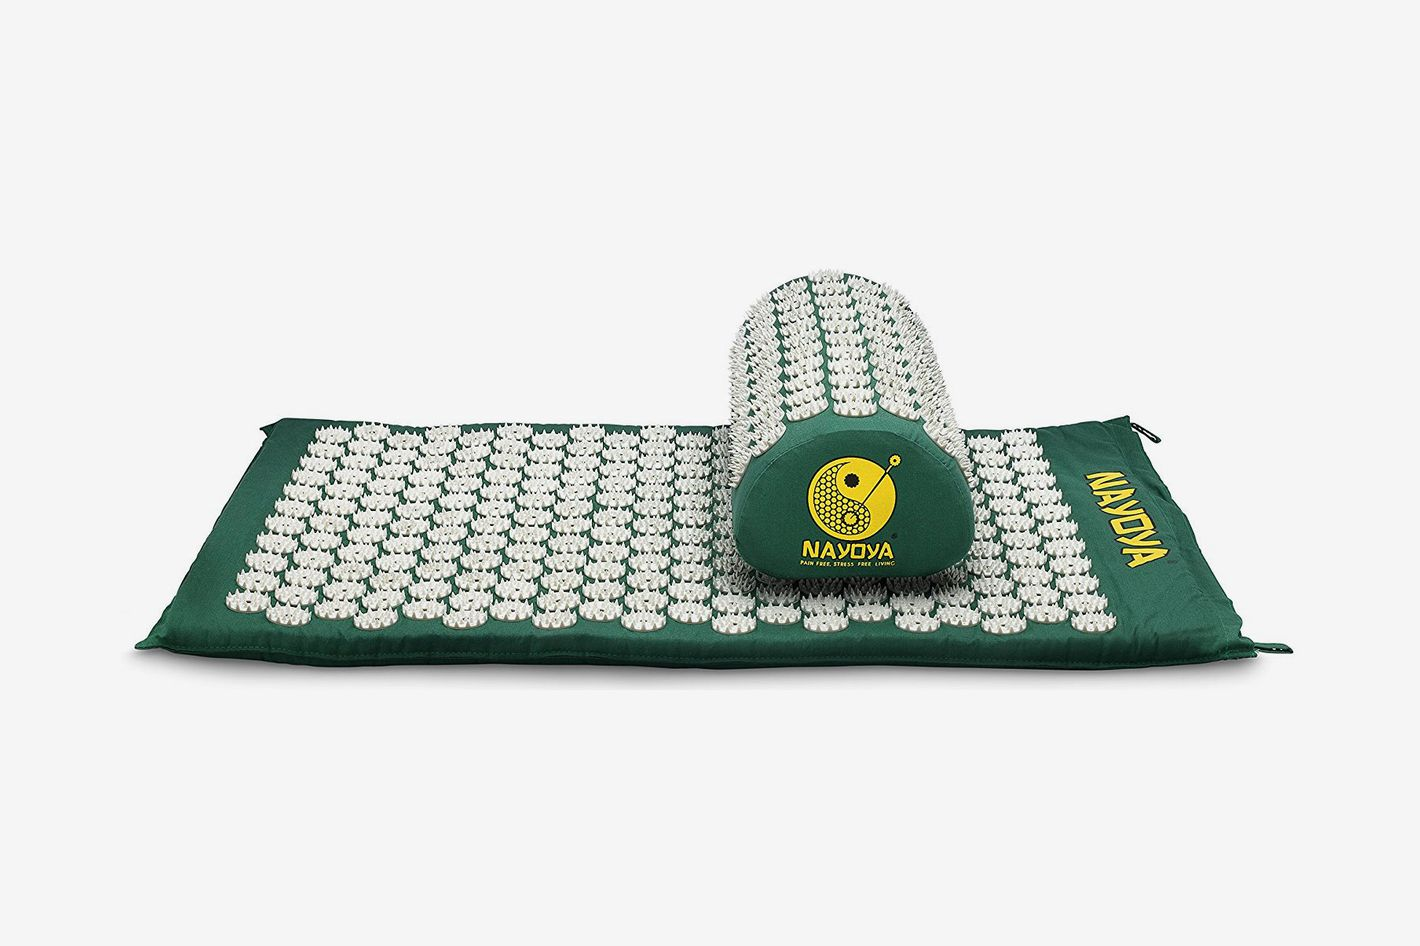 Nayoya Back and Neck Pain Relief Acupressure Mat and Pillow Set